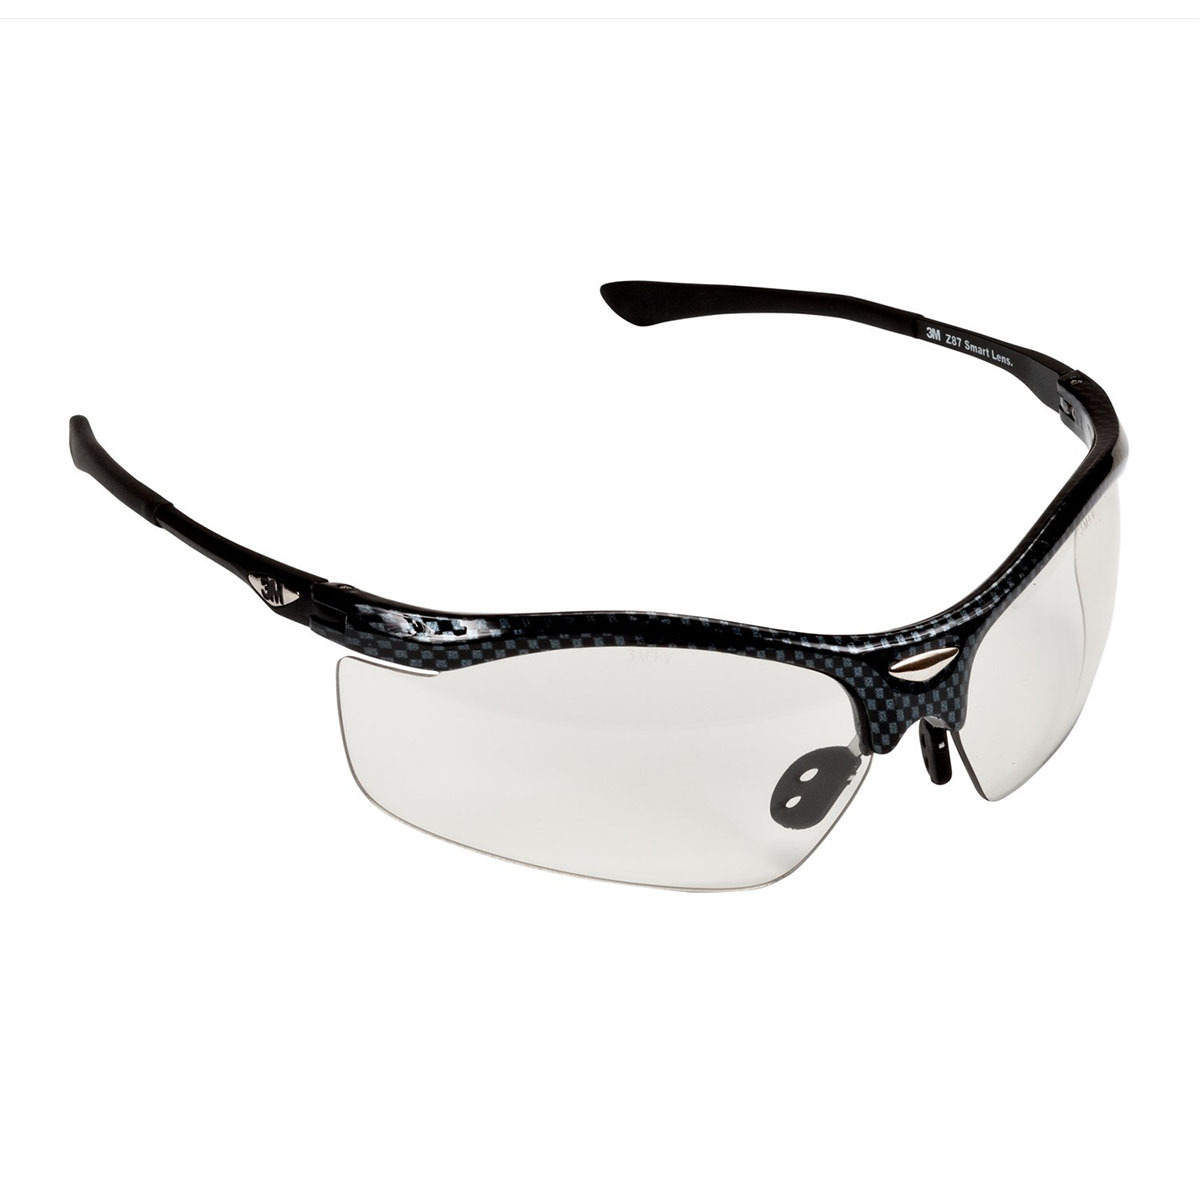 cb14cff4cb 3M™ Smart Lens™ Black Checkered Frame Safety Glasses With Photochromic  Anti-Scratch Lens